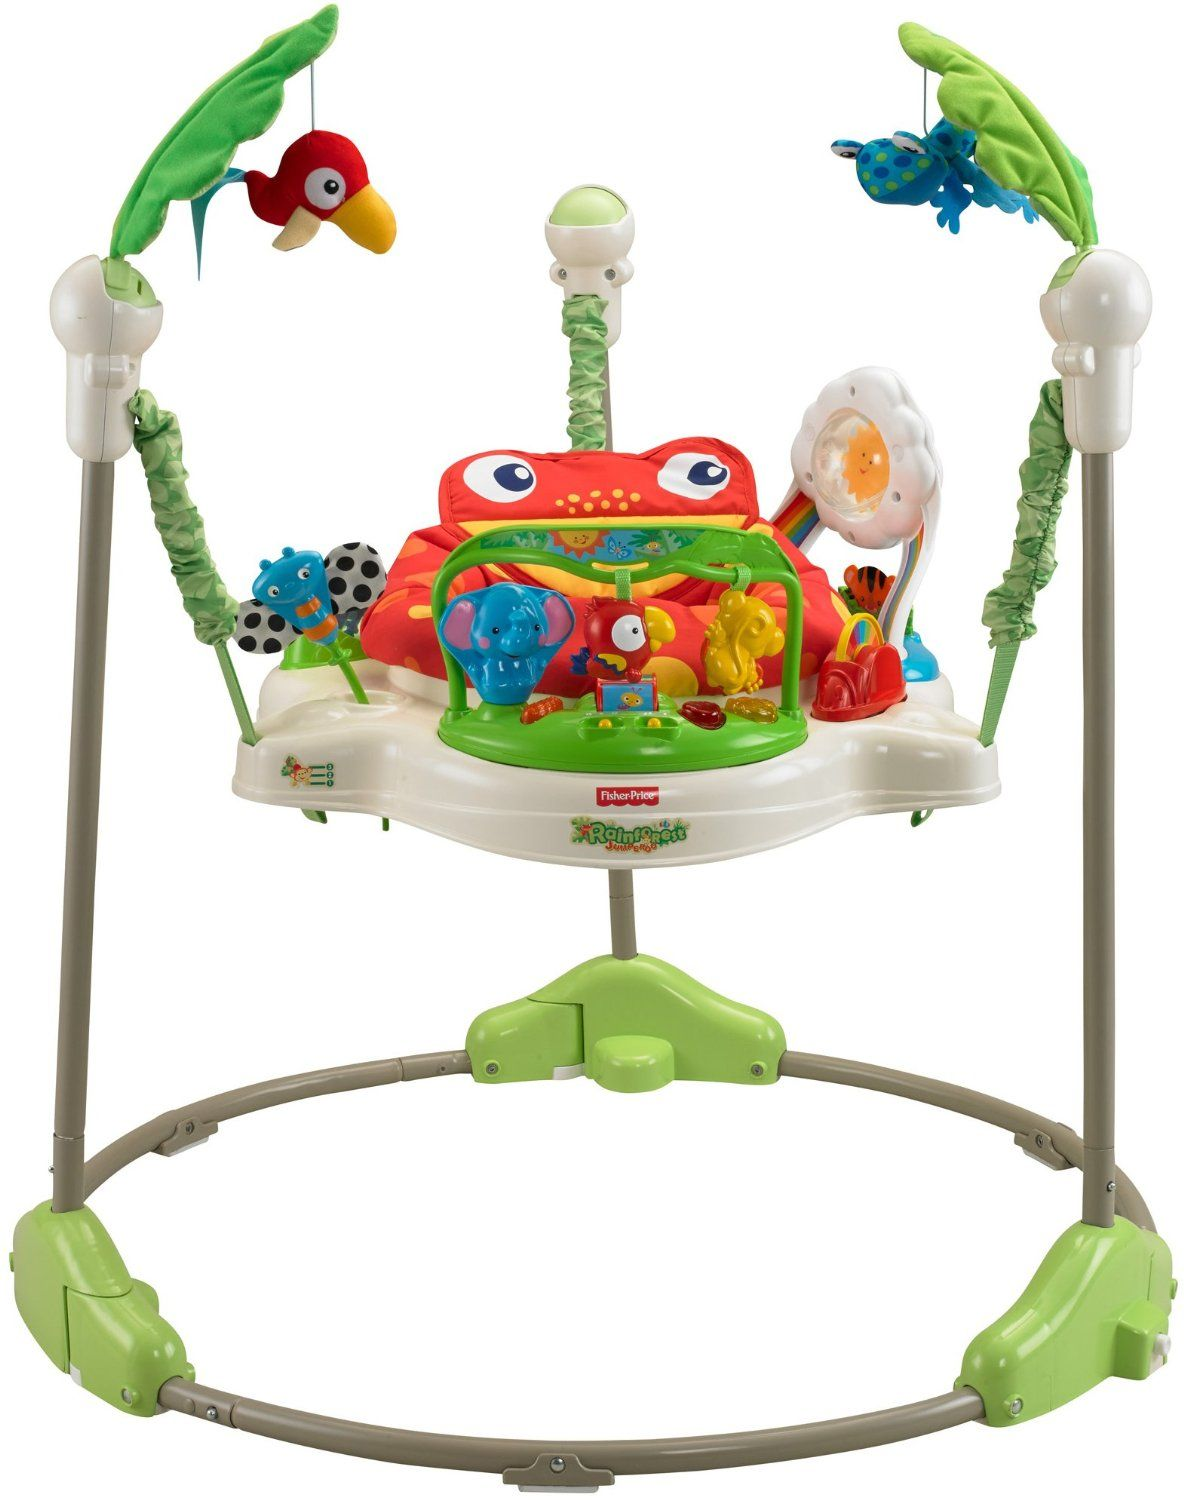 Fisher-Price Baby Gear - K7198 - Rainforest Jumperoo ...